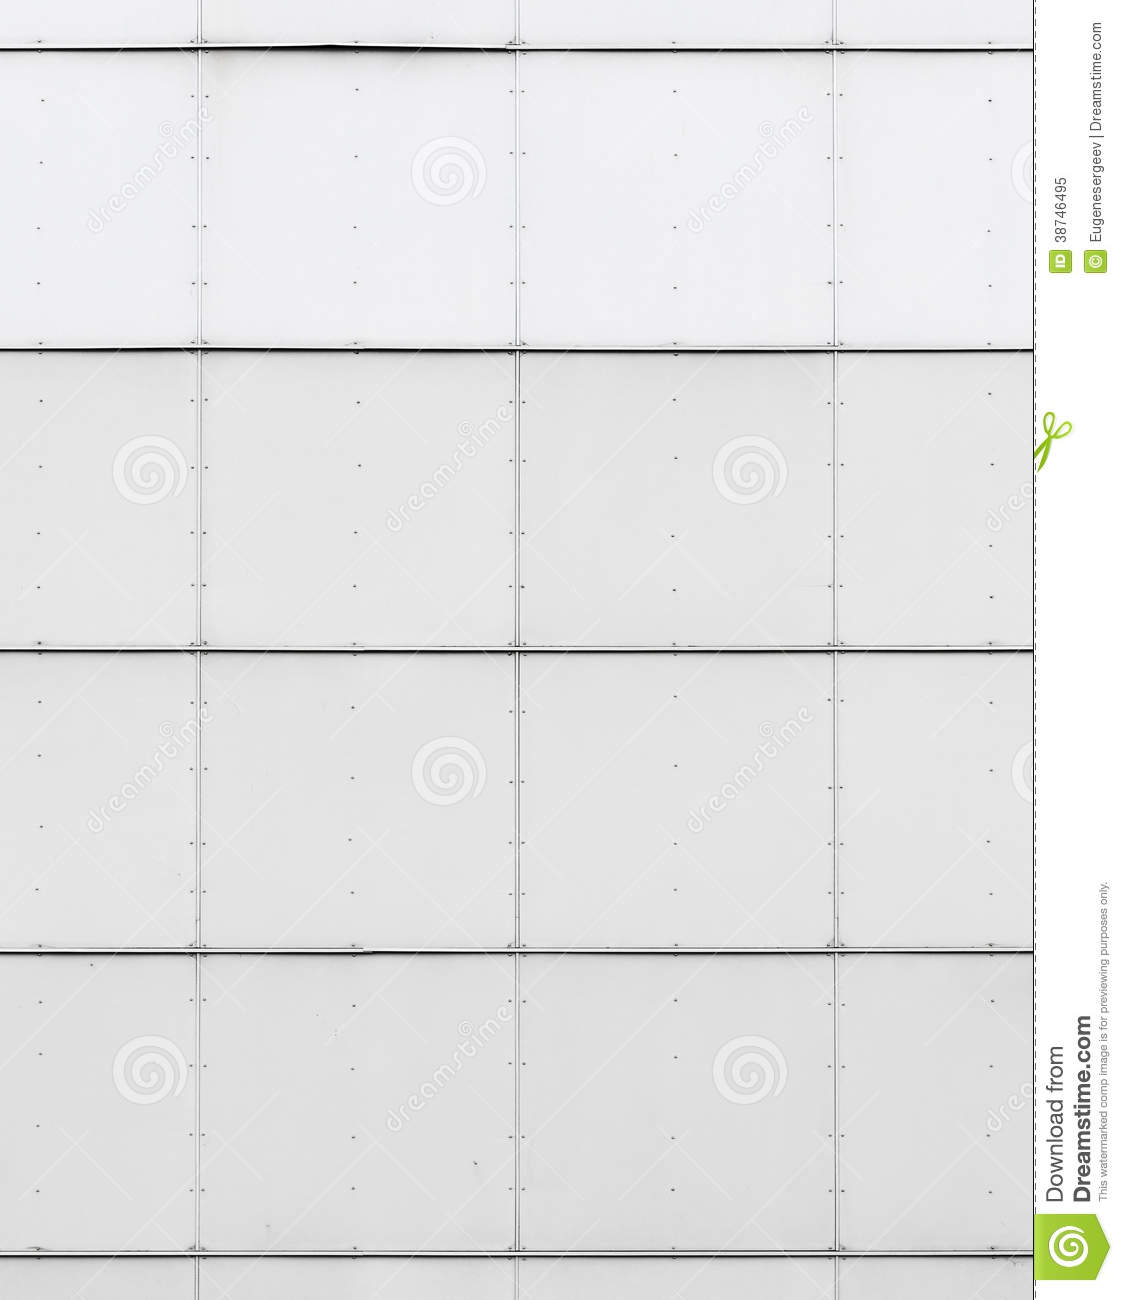 White industrial wall texture with metal tiling royalty free stock photo image 38746495 - Textuur tiling wit ...